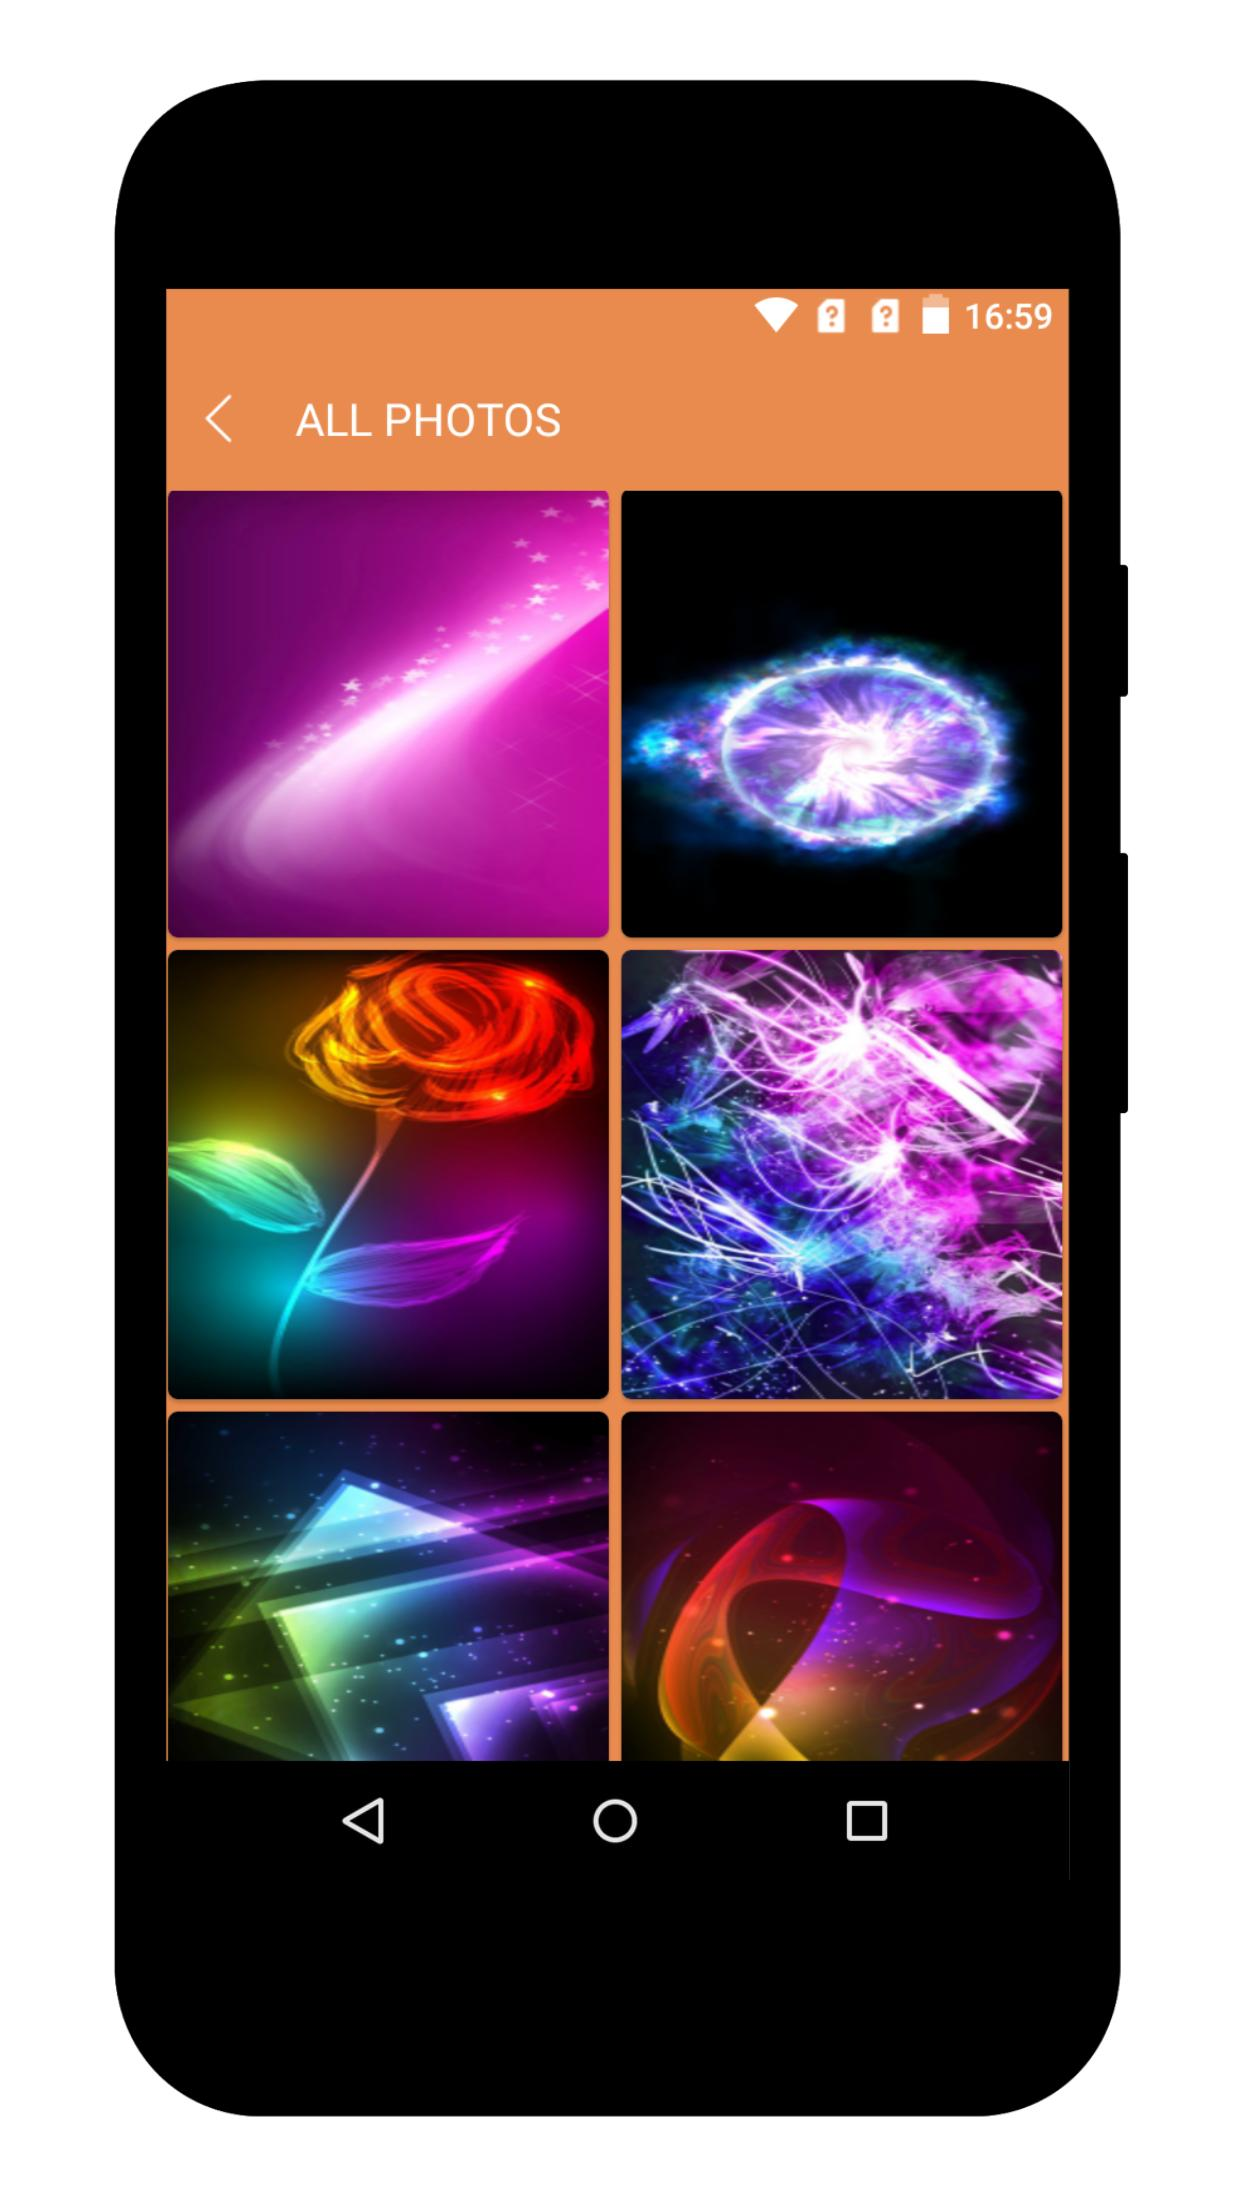 Glowing Wallpaper 4k Vivid Vibrant Backgrounds For Android Apk Download